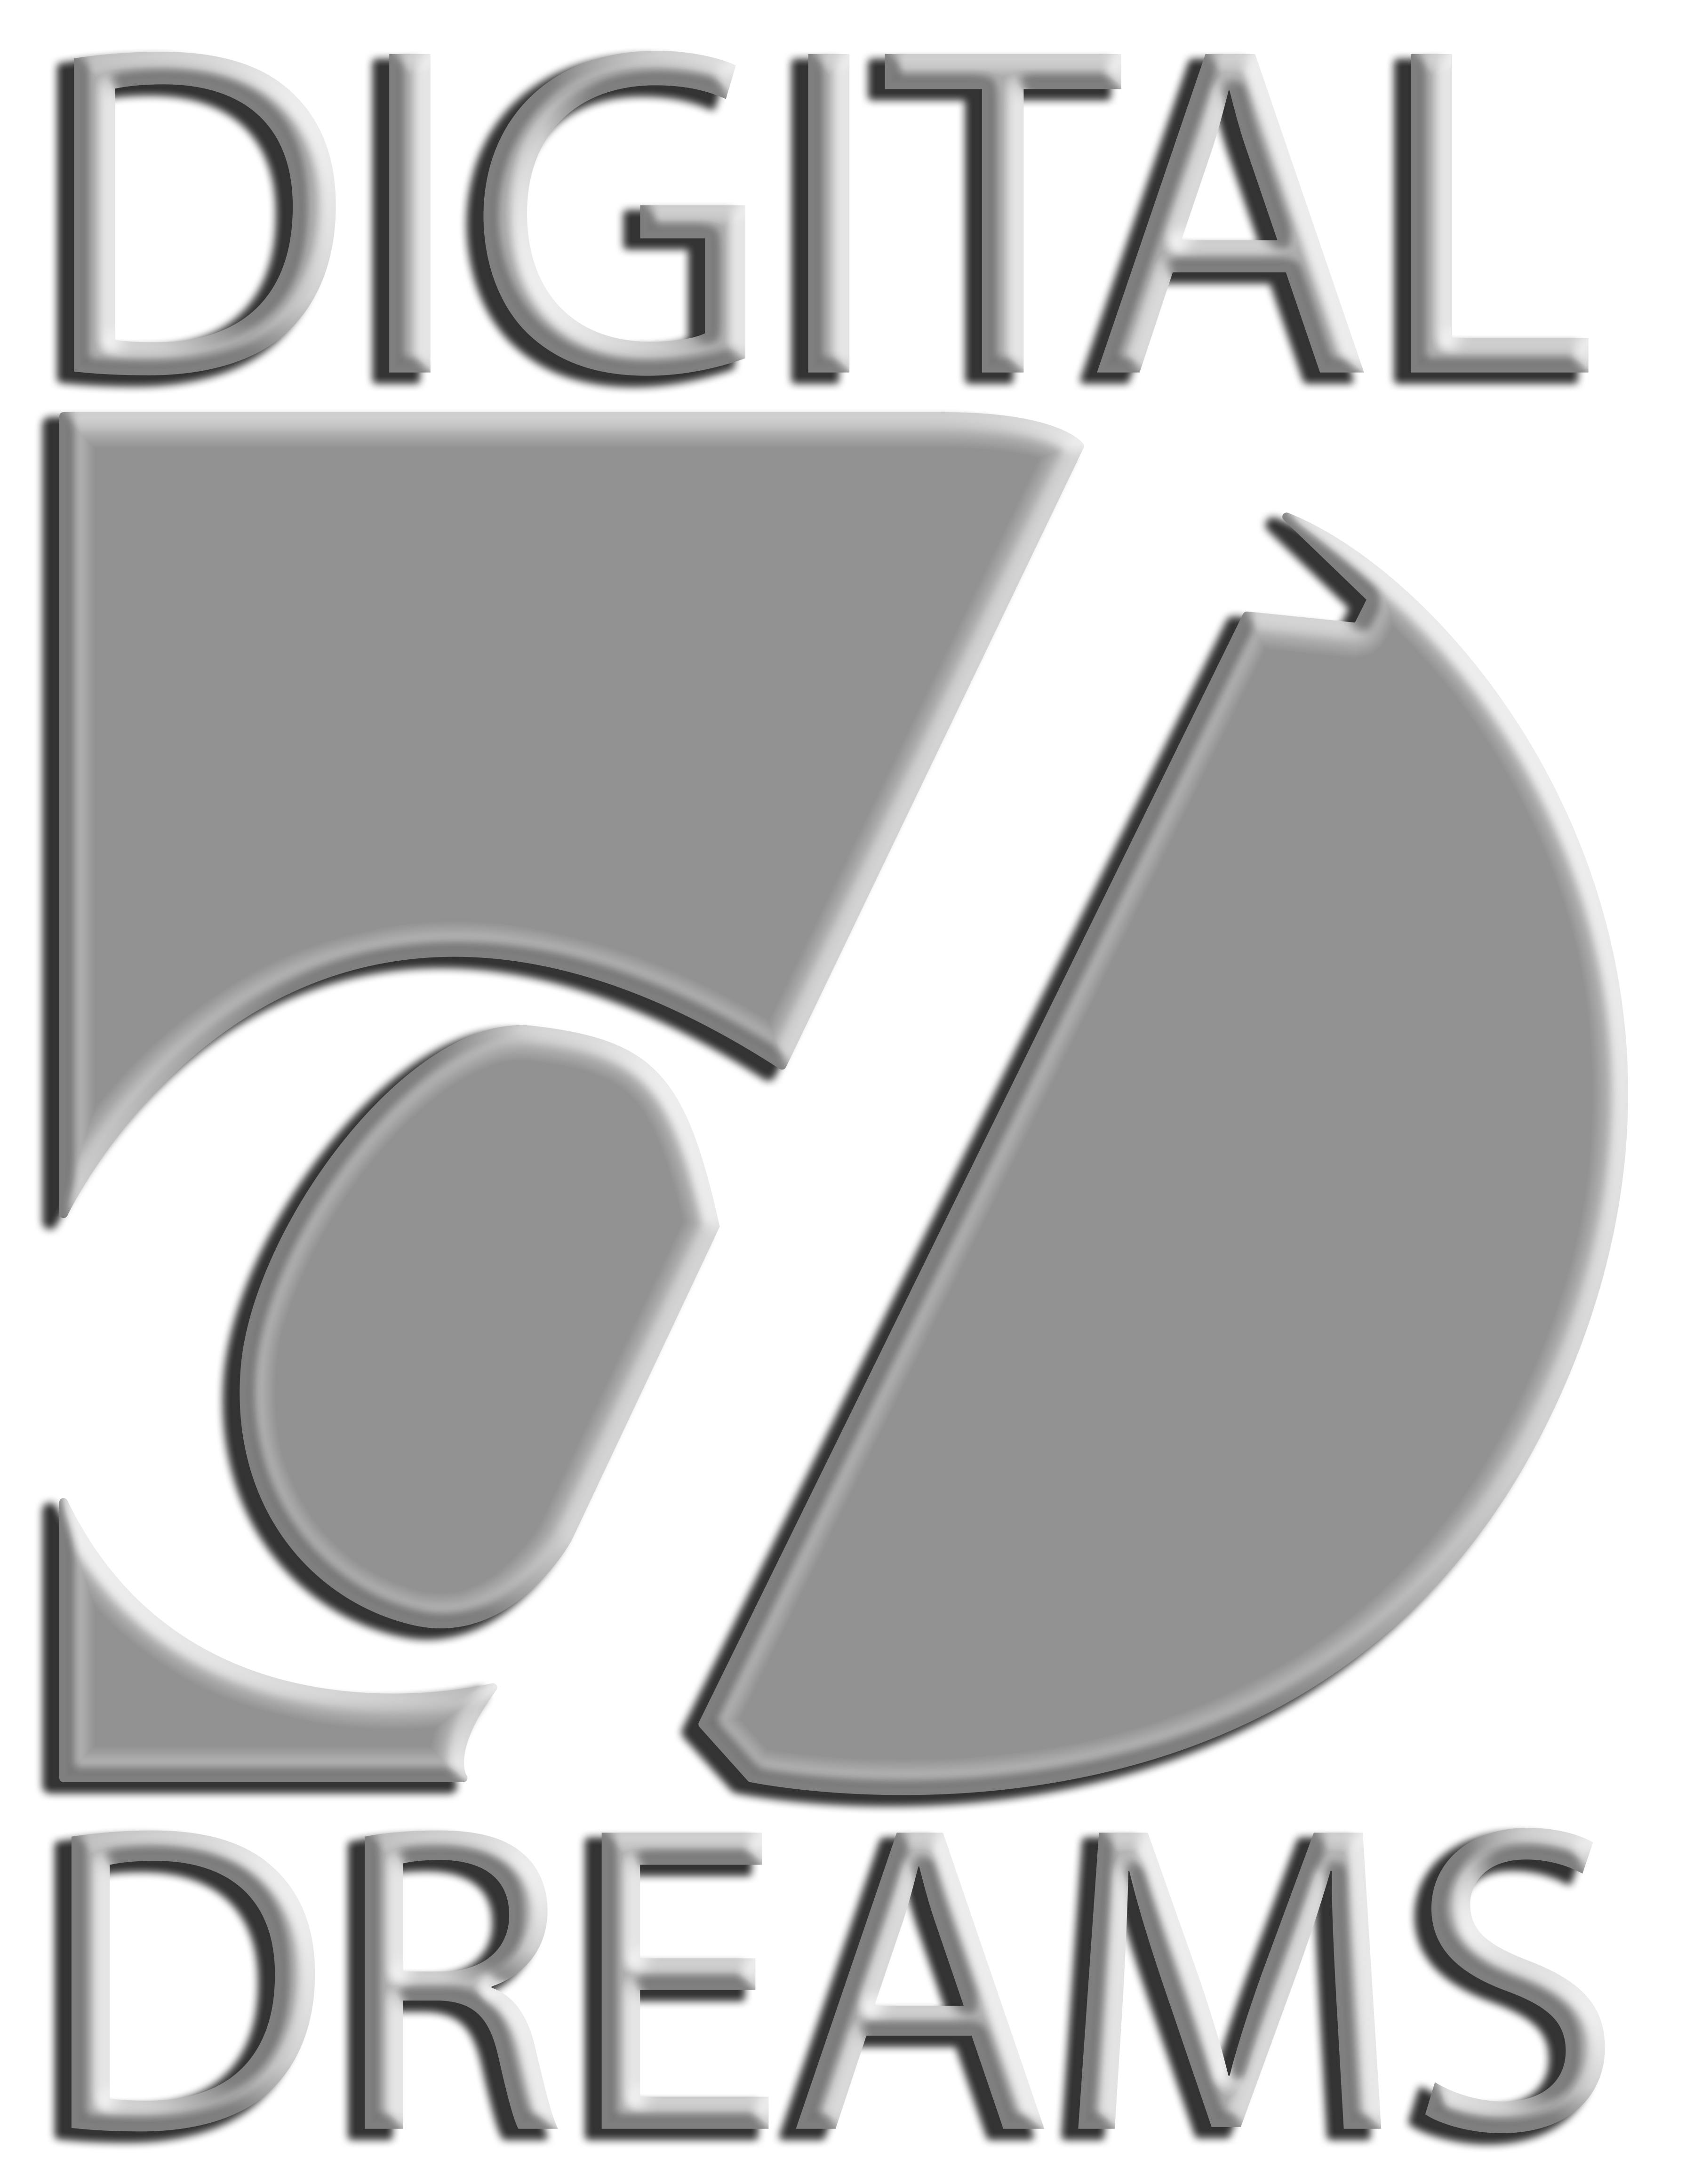 Digital Dreams: A Security Systems Solution Provider, Offers to Organizations Quality Security Cameras